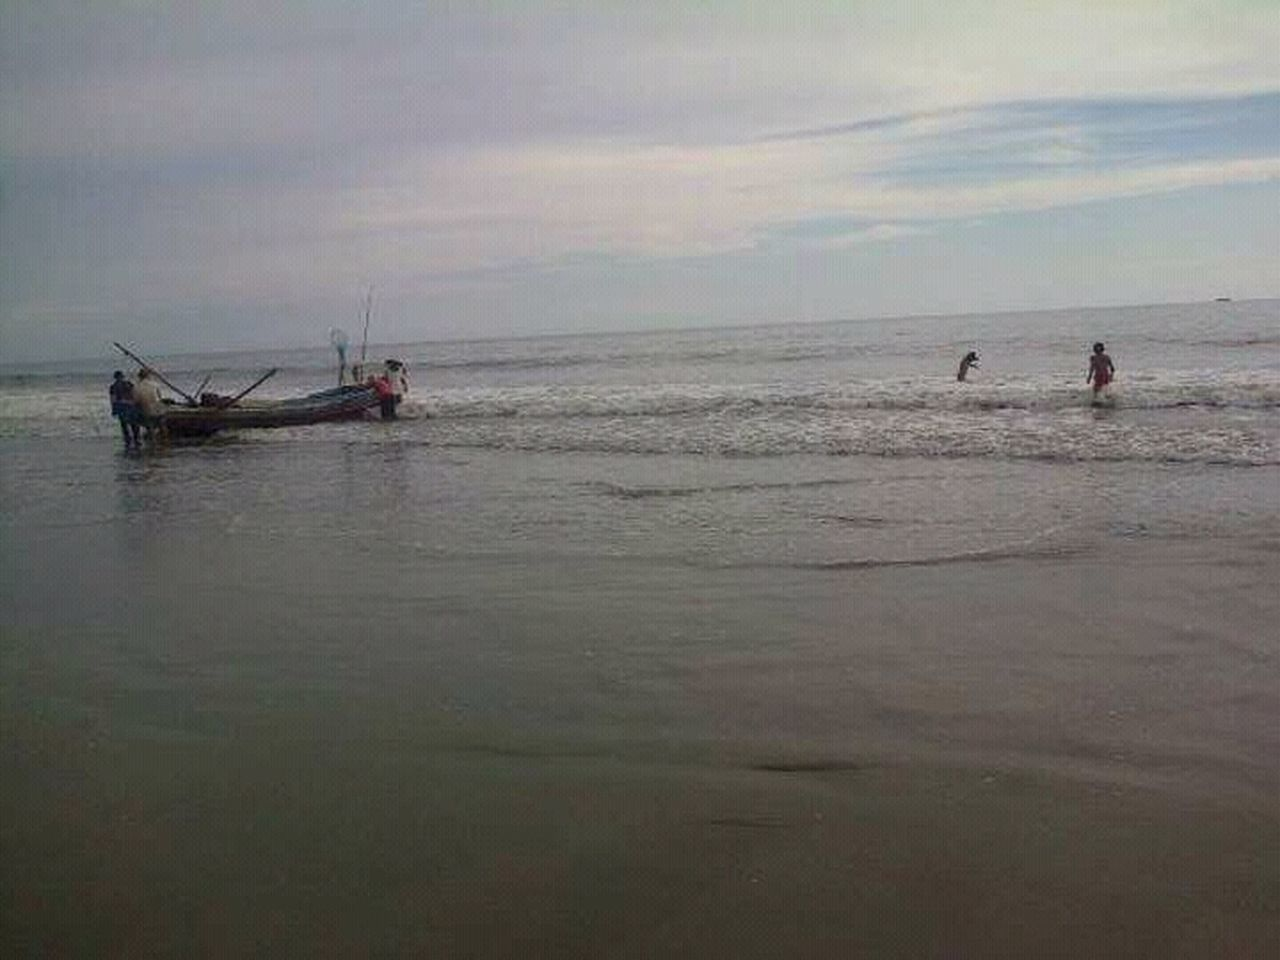 water, sea, nature, men, real people, sky, outdoors, beauty in nature, scenics, occupation, beach, fisherman, day, people, adult